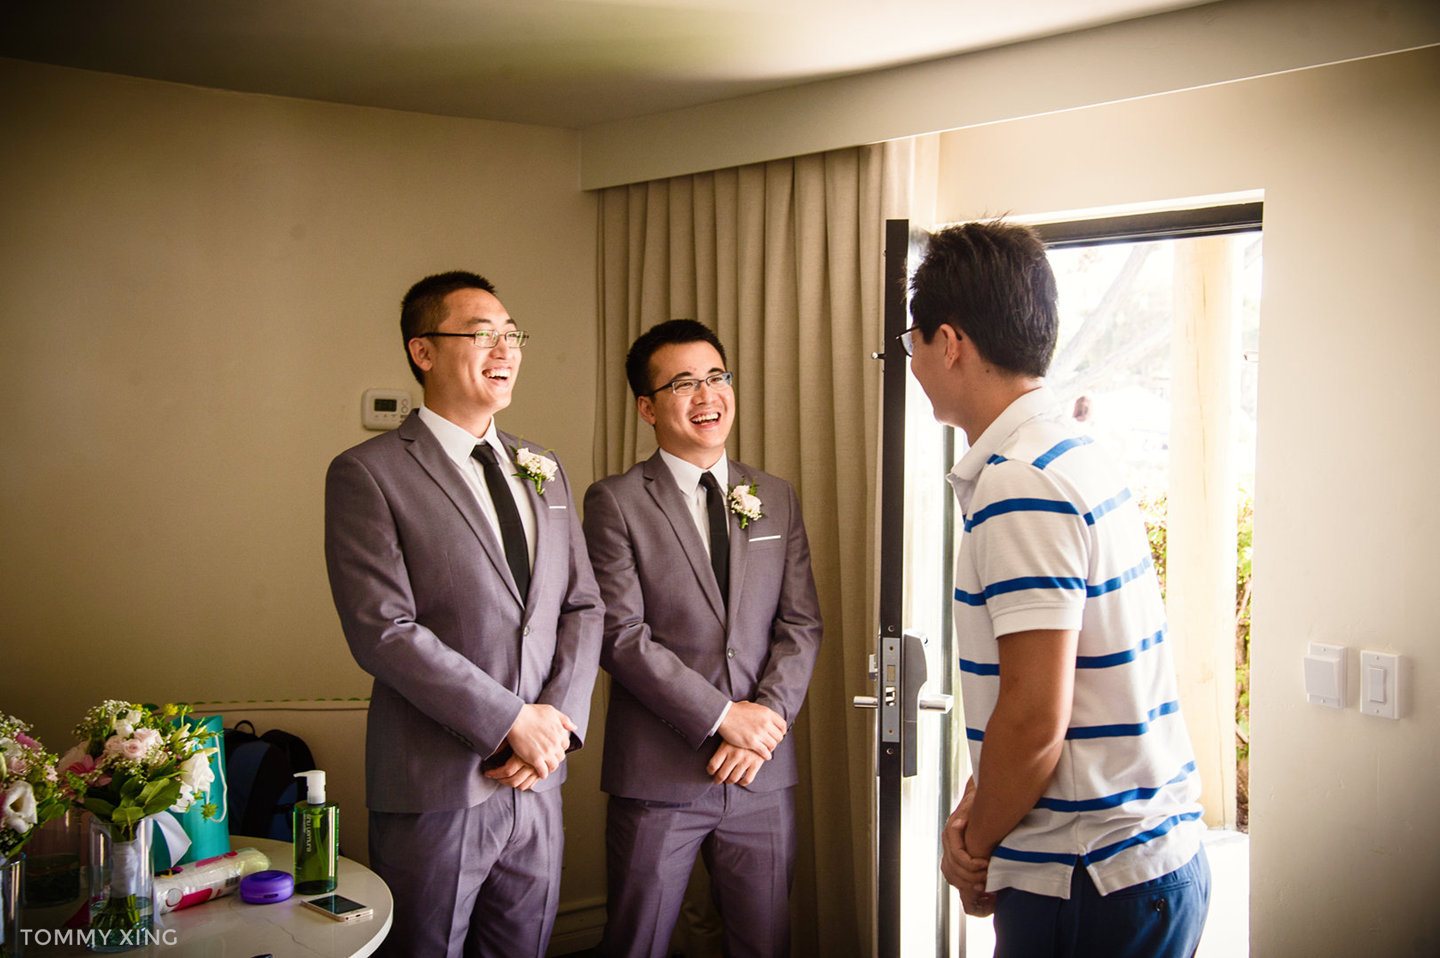 Paradise Point Resort Wedding Xiaolu & Bin San Diego 圣地亚哥婚礼摄影跟拍 Tommy Xing Photography 洛杉矶婚礼婚纱照摄影师 032.jpg